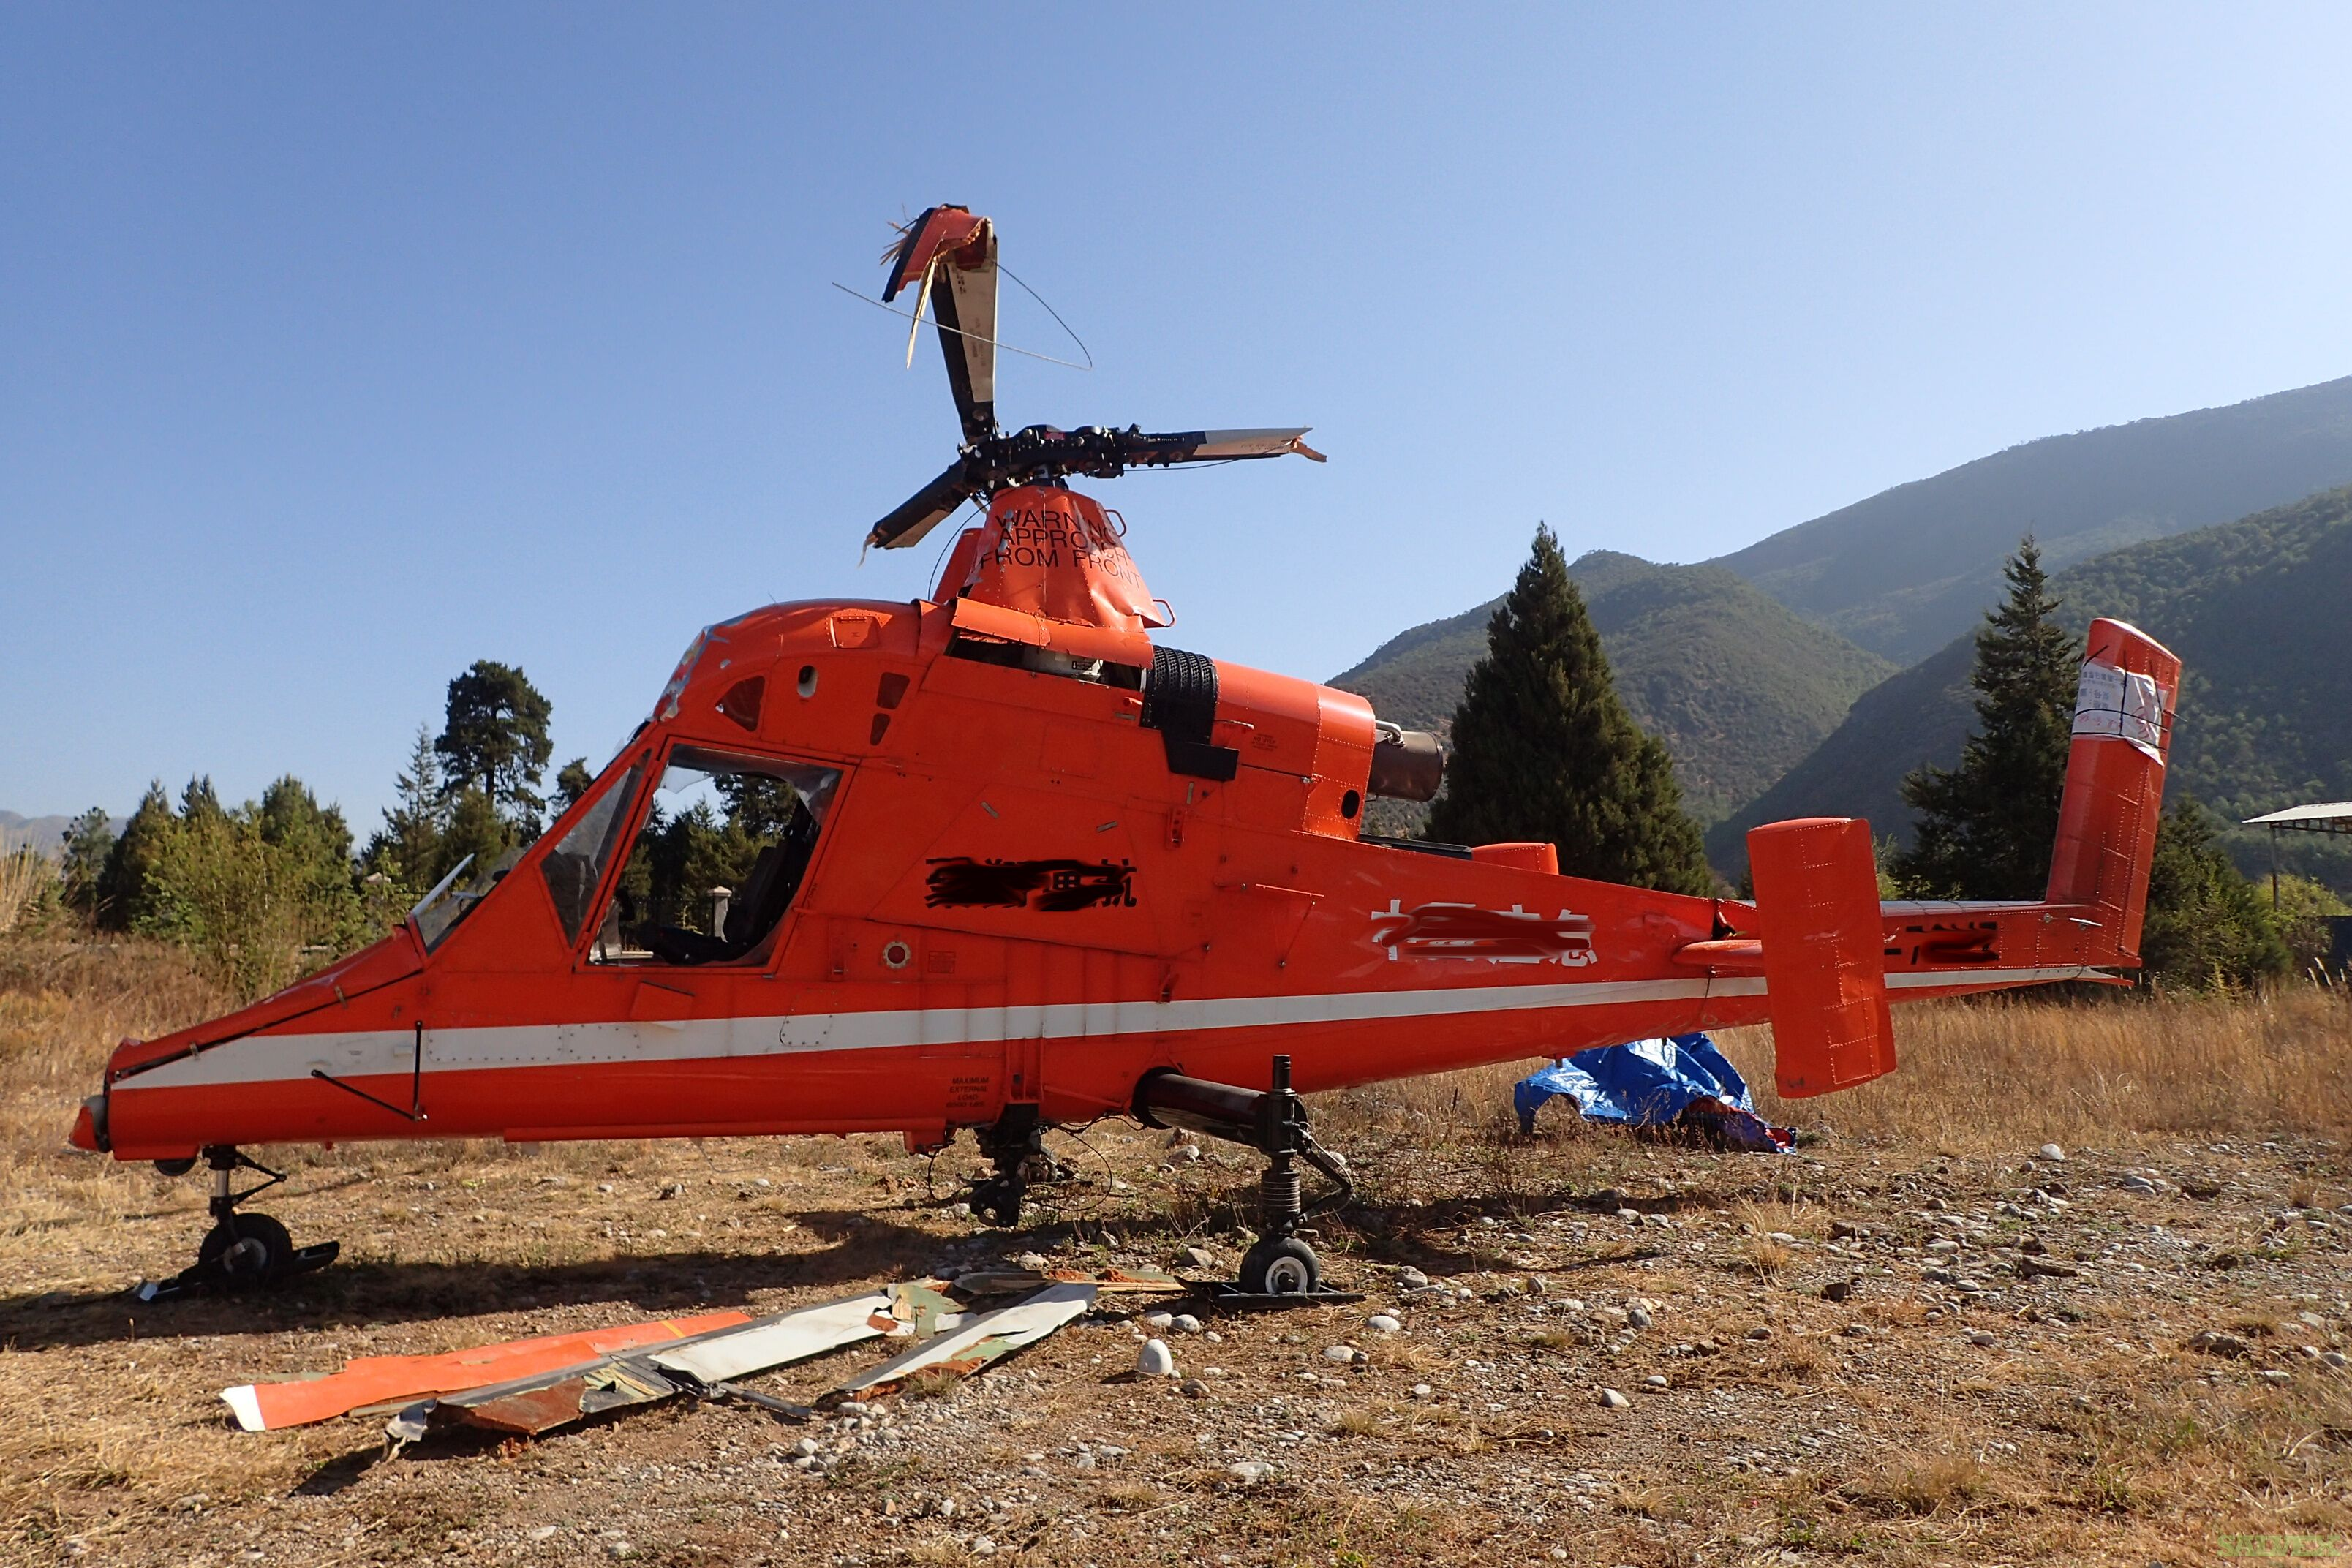 KAMAN K-1200 K-MAX helicopter